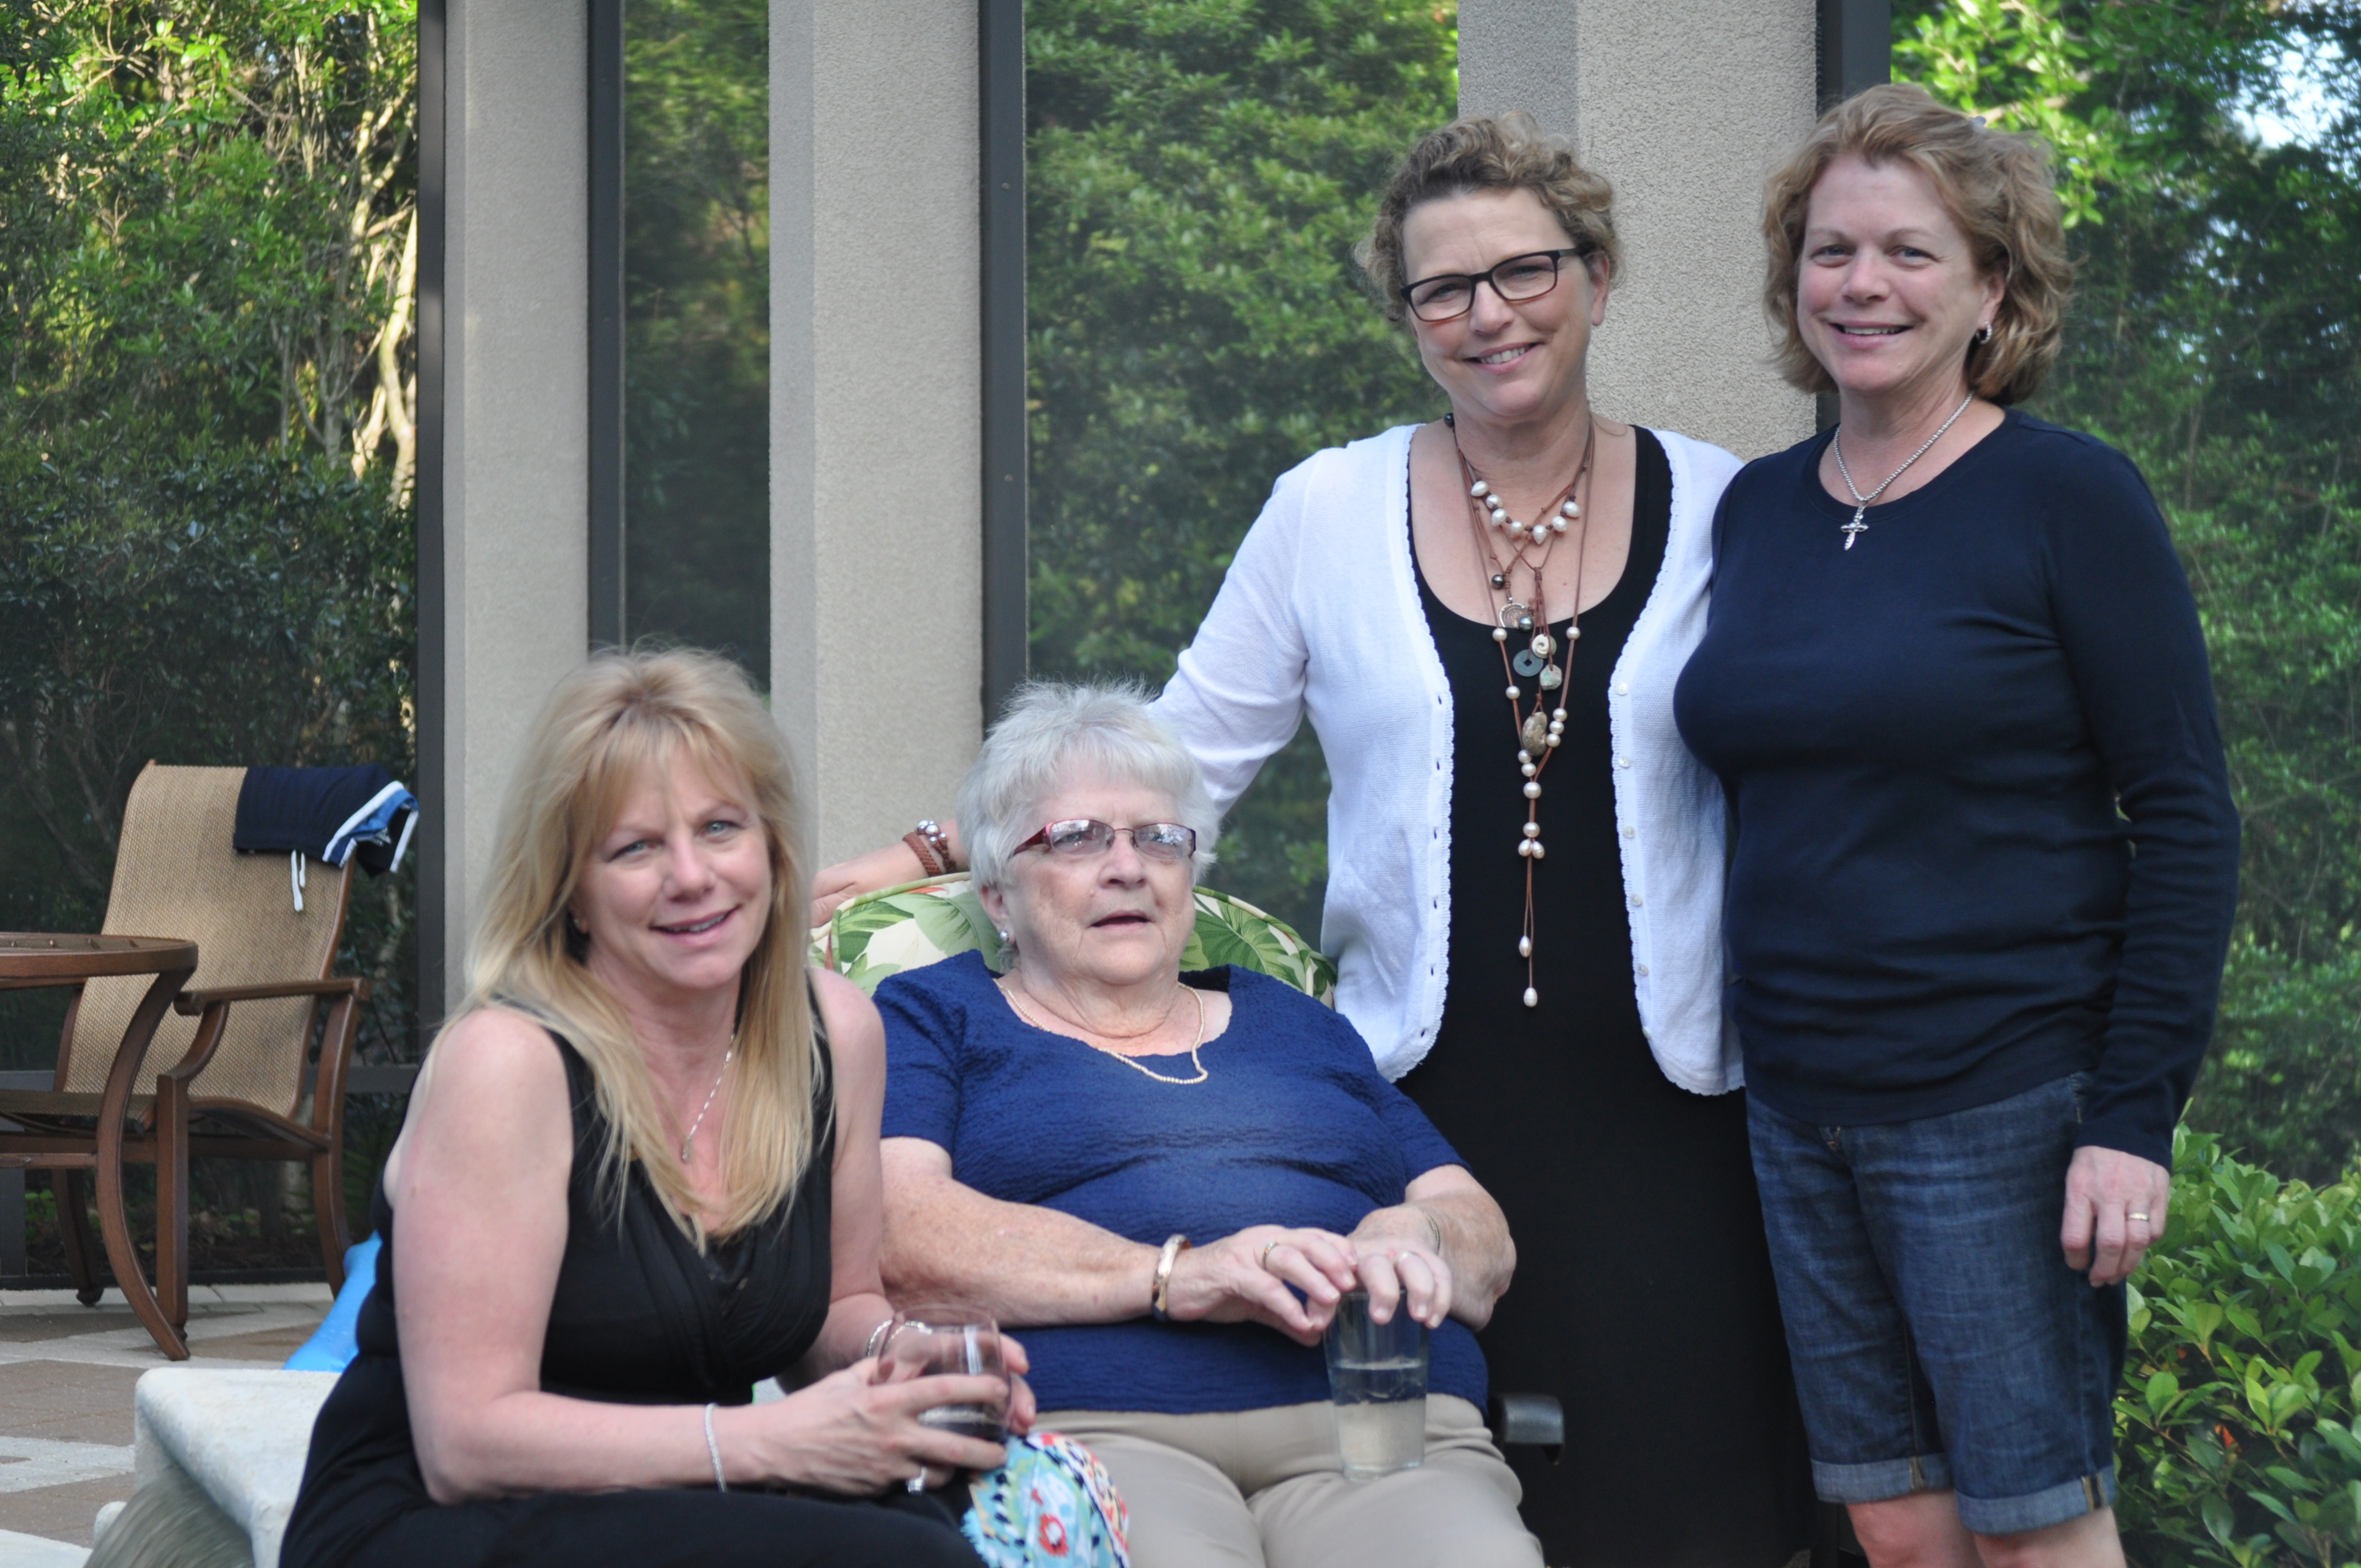 One of my favorites of Mom, Cindy, Barb and I at Cindy's home in Destin.  March 2012